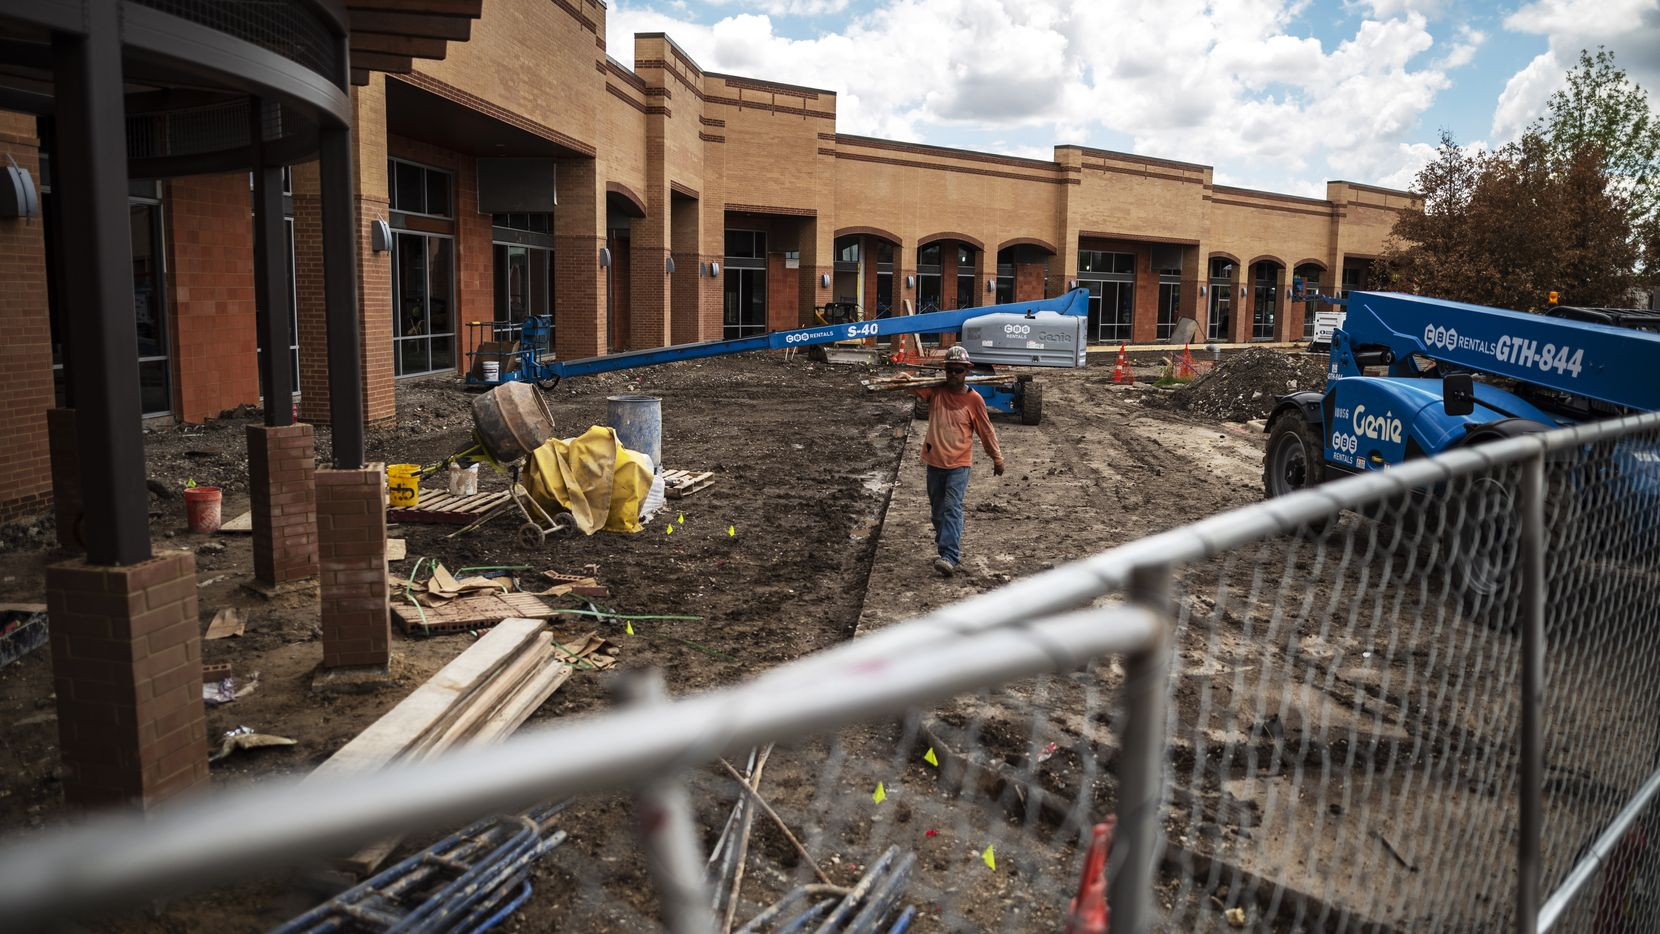 Construction is almost finished on the retail space next to Central Market at Preston Road and Royal Lane. The center is scheduled to be ready in late August.